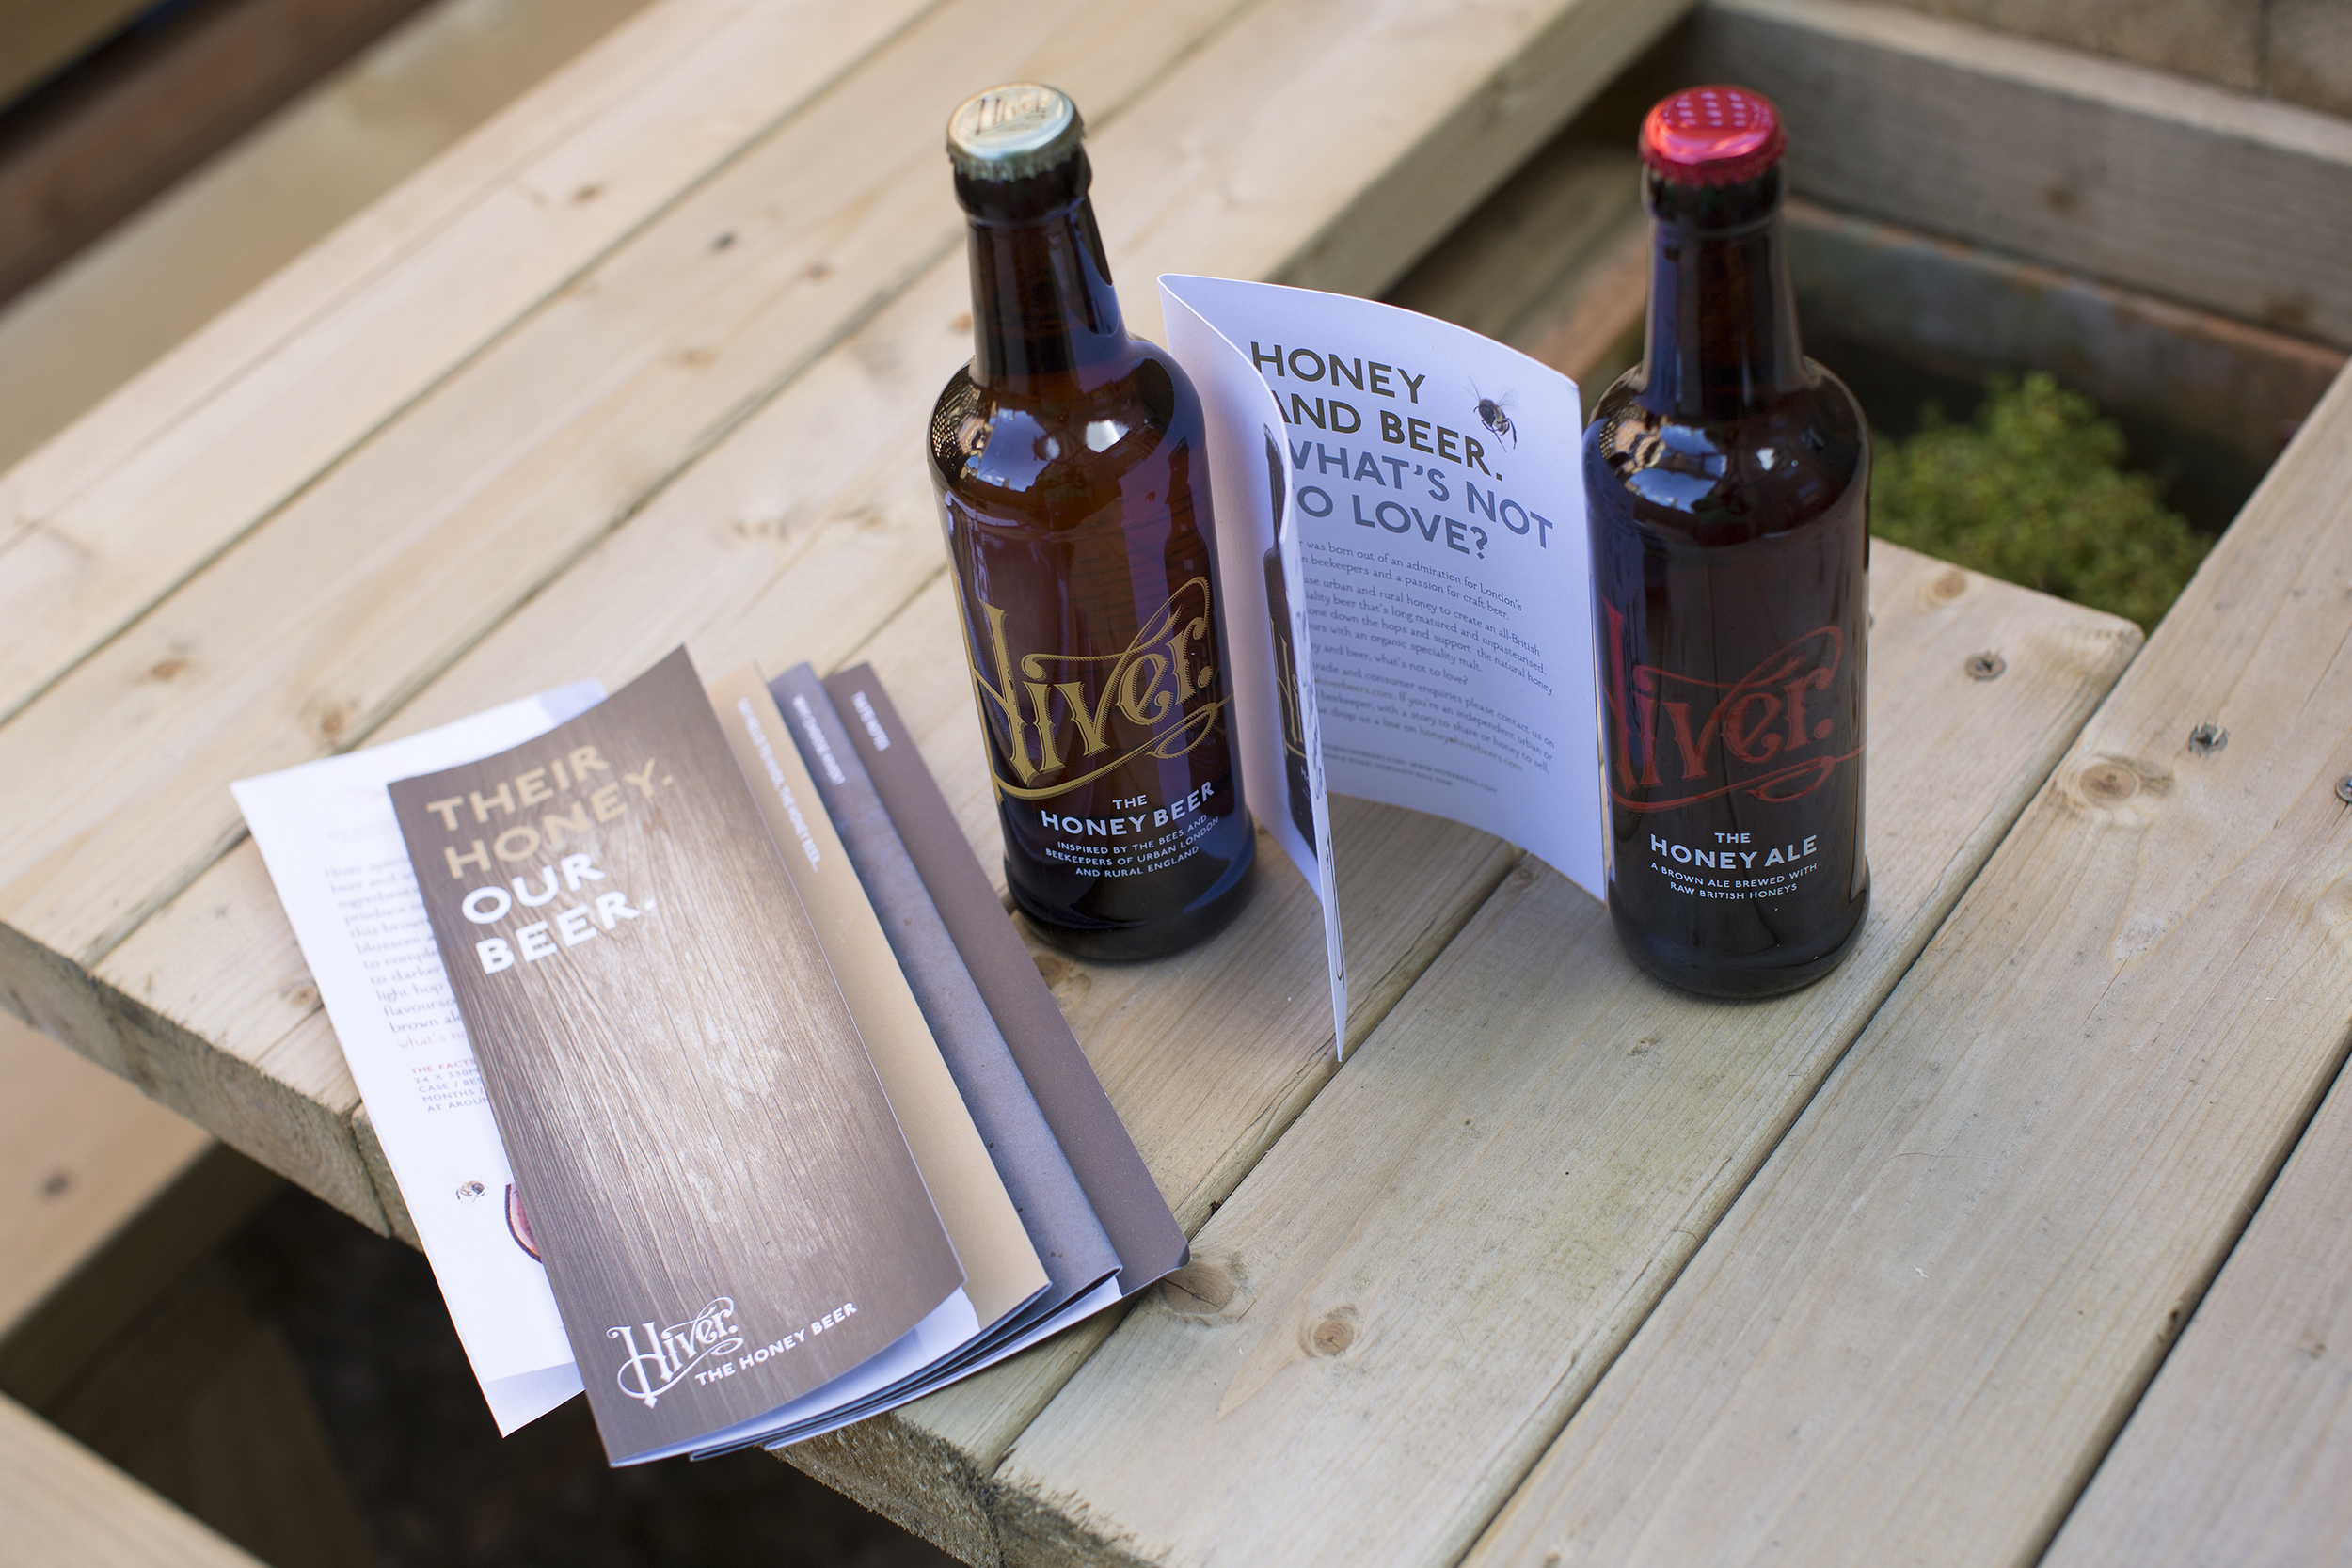 This gorgeous literature is provided to stockists of Hiver Beers, although doesn't come as standard with every order.